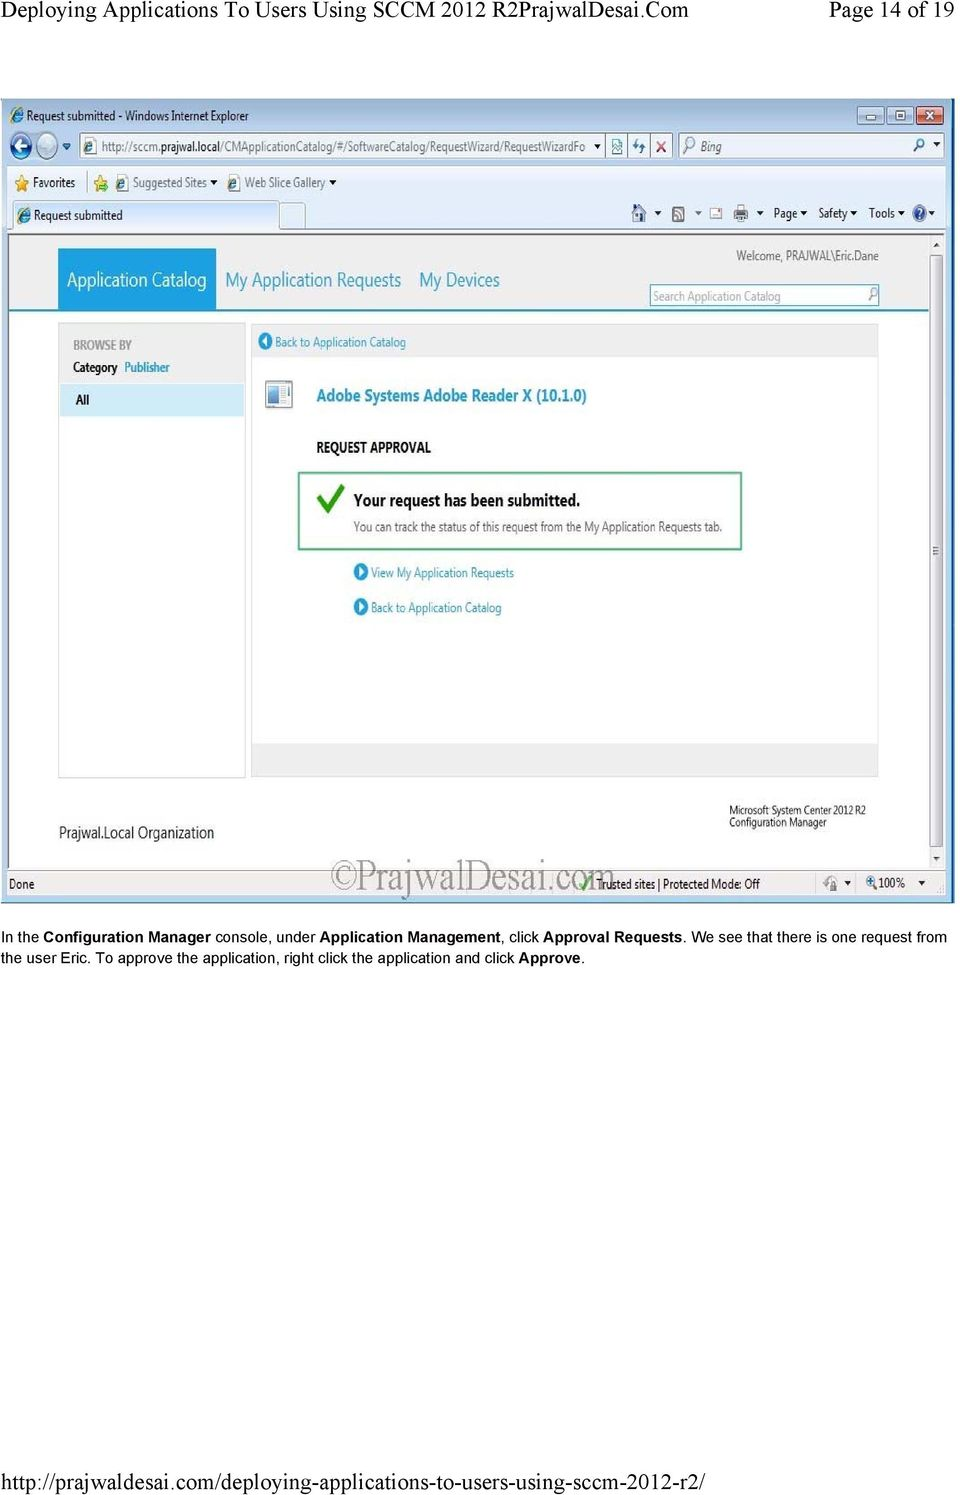 Deploying Applications To Users Using SCCM 2012 R2 - PDF